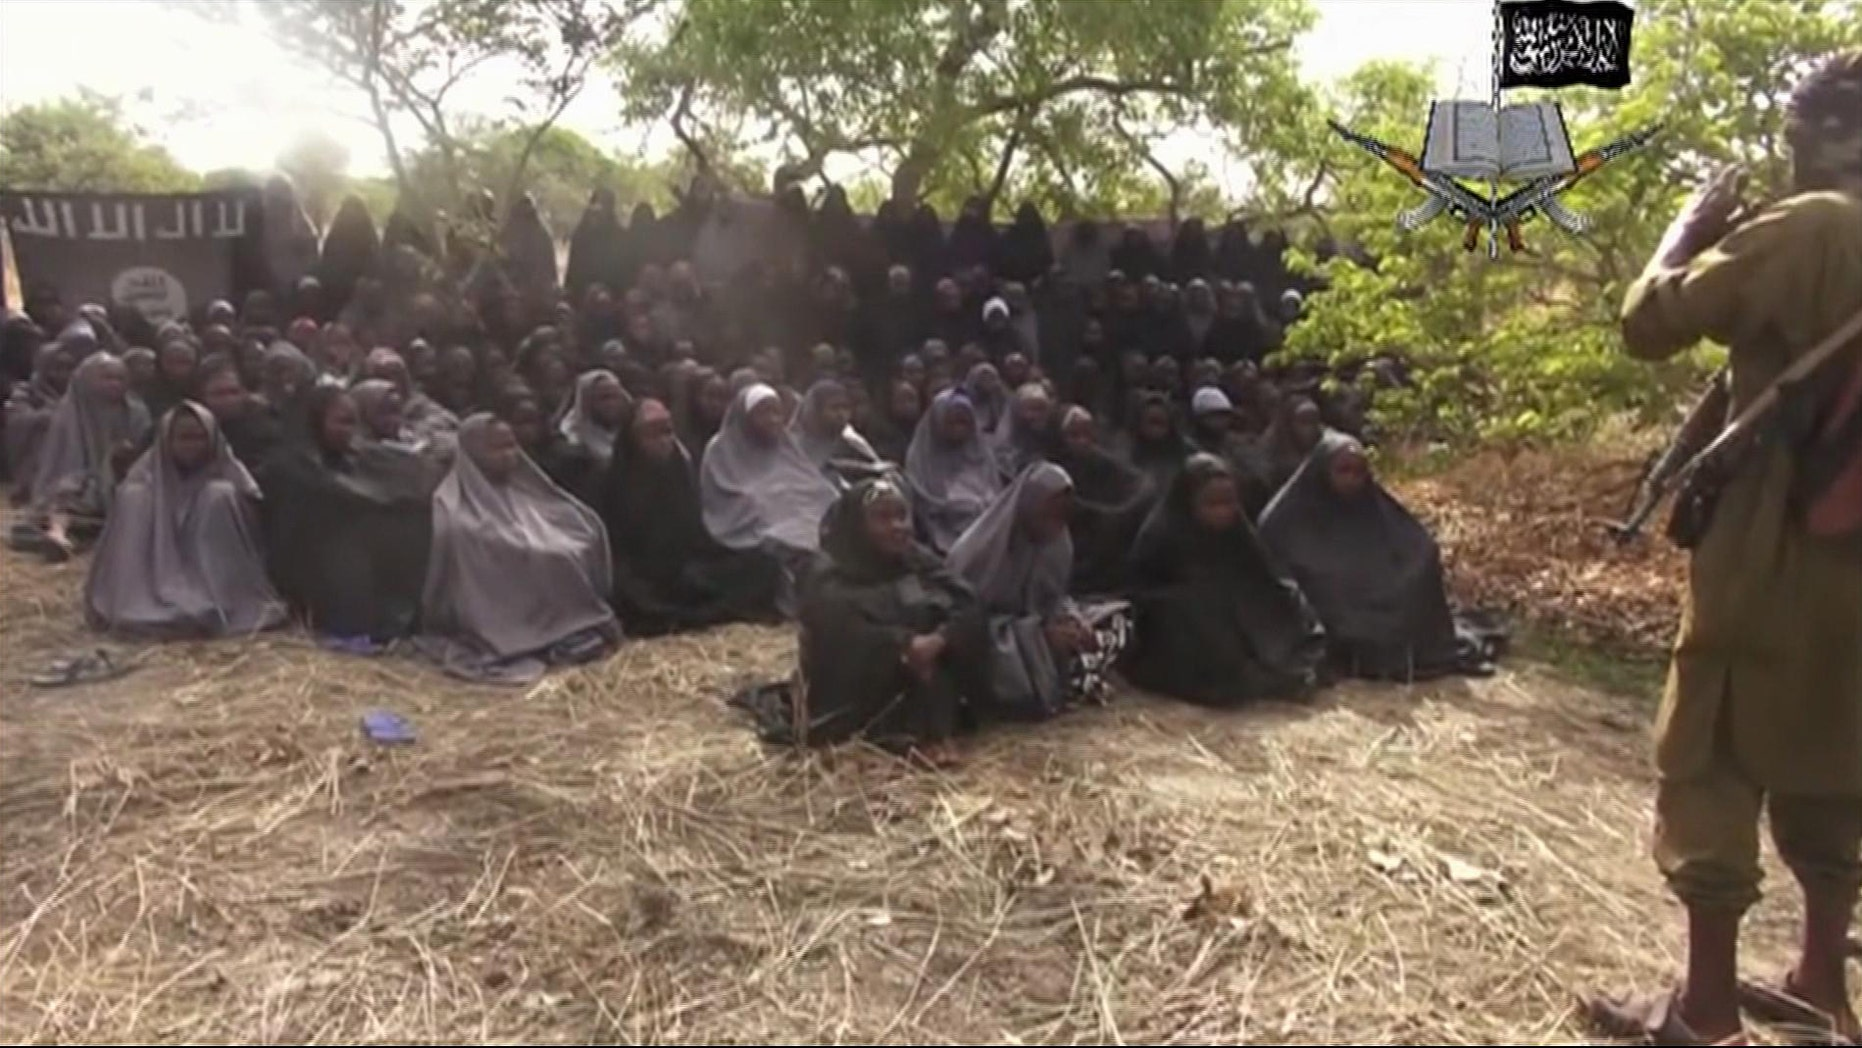 May 12, 2014 - Photo taken from video by Nigeria's Boko Haram terrorist network shows the alleged missing girls abducted from the northeastern town of Chibok. The new video purports to show  the girls, covered in jihab and praying in Arabic. It is the first public sight of the girls since more than 300 were kidnapped exactly four weeks ago.